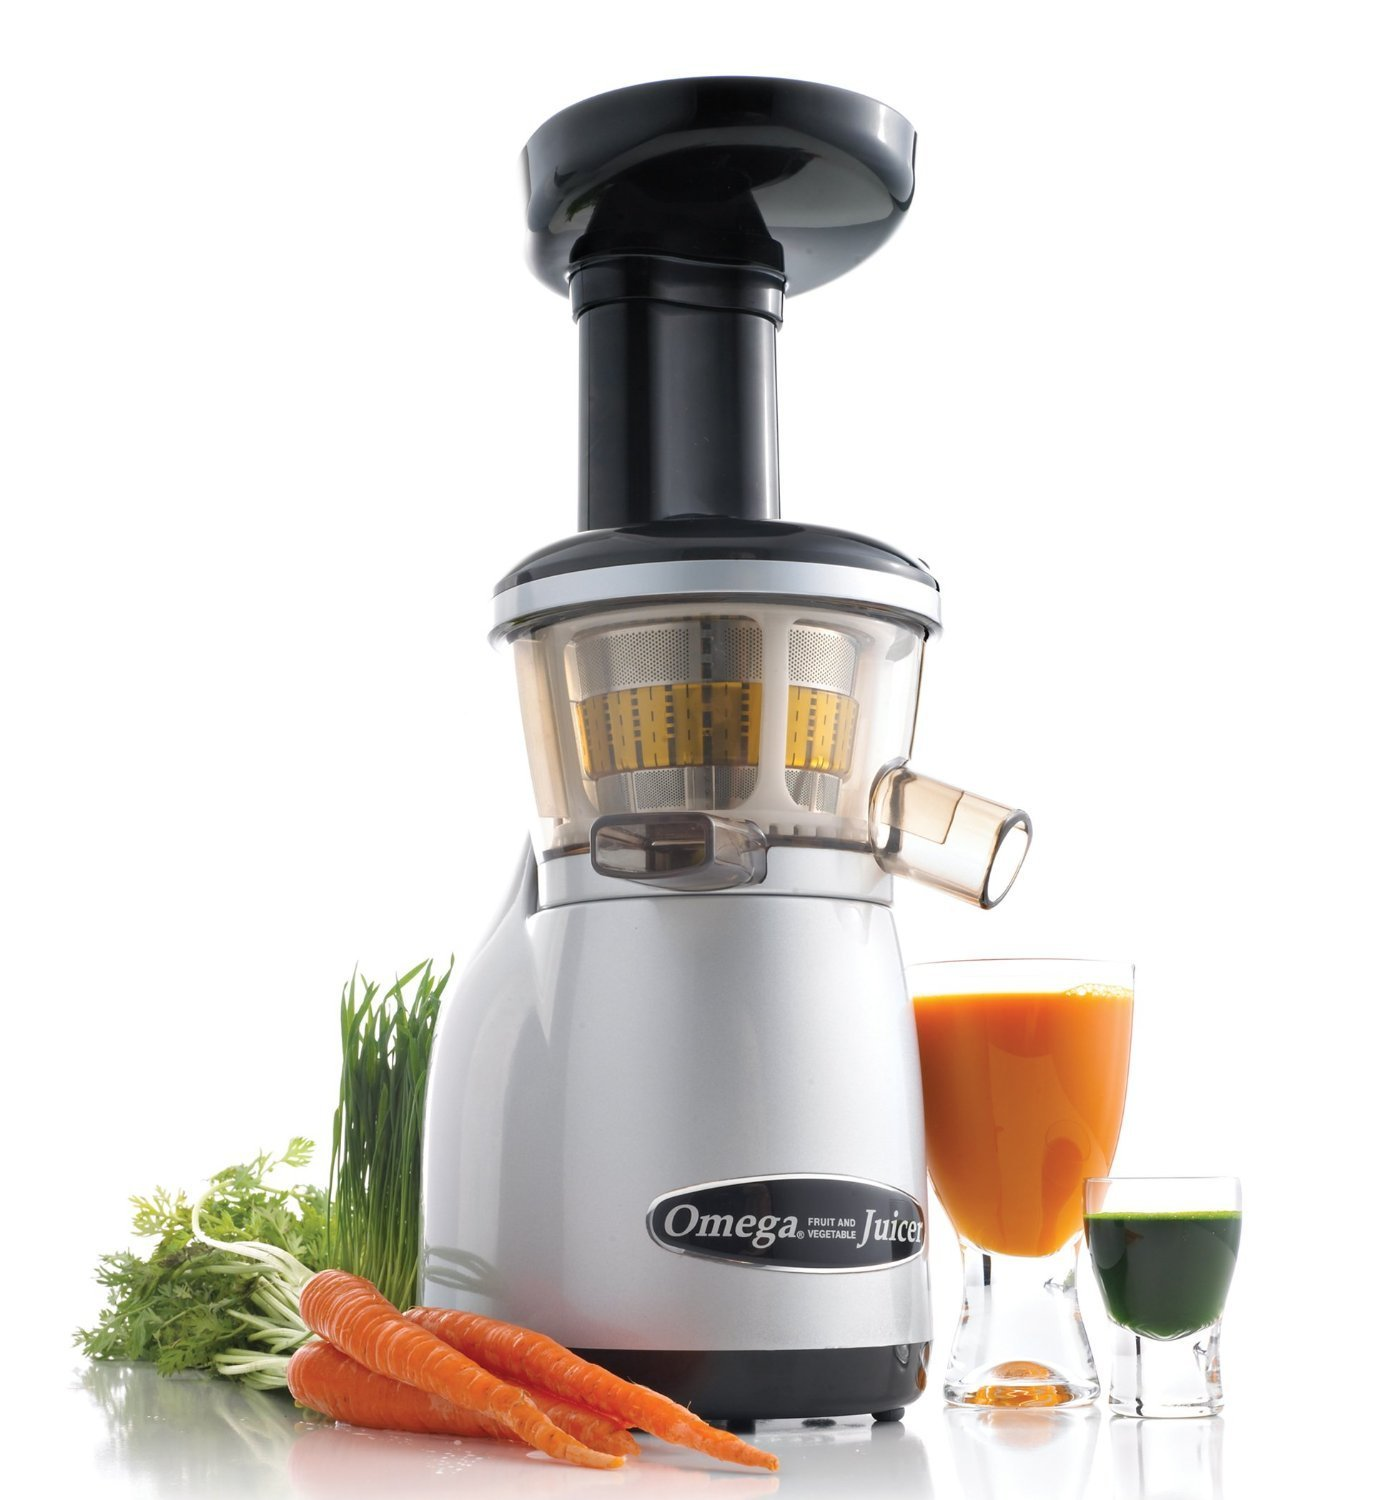 Omega Juicers VRT350X Heavy Duty Dual-Stage Vertical Single-Auger Low-Speed Juicer